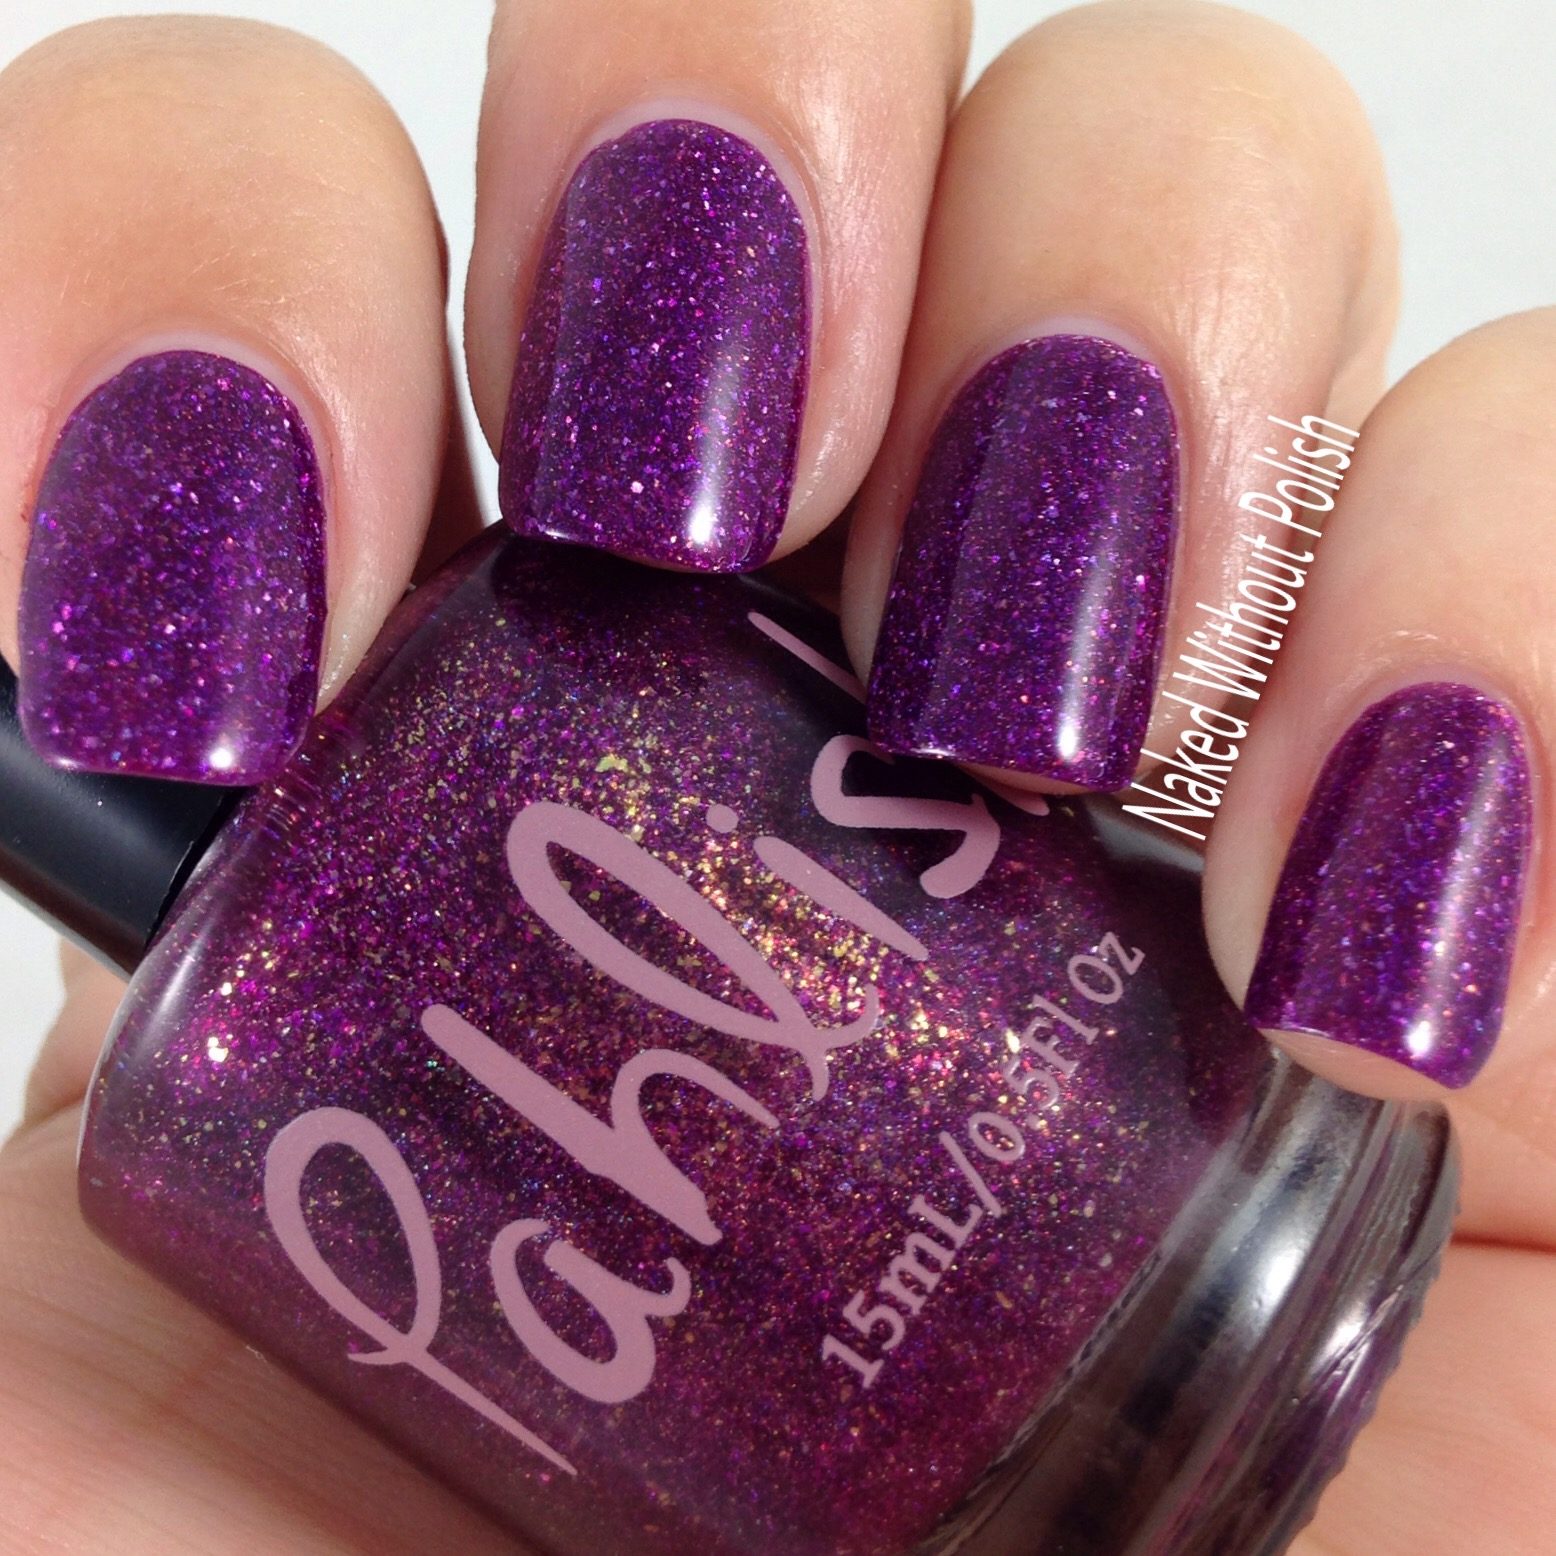 Polish-Pickup-Pahlish-Goddess-of-Desire-6